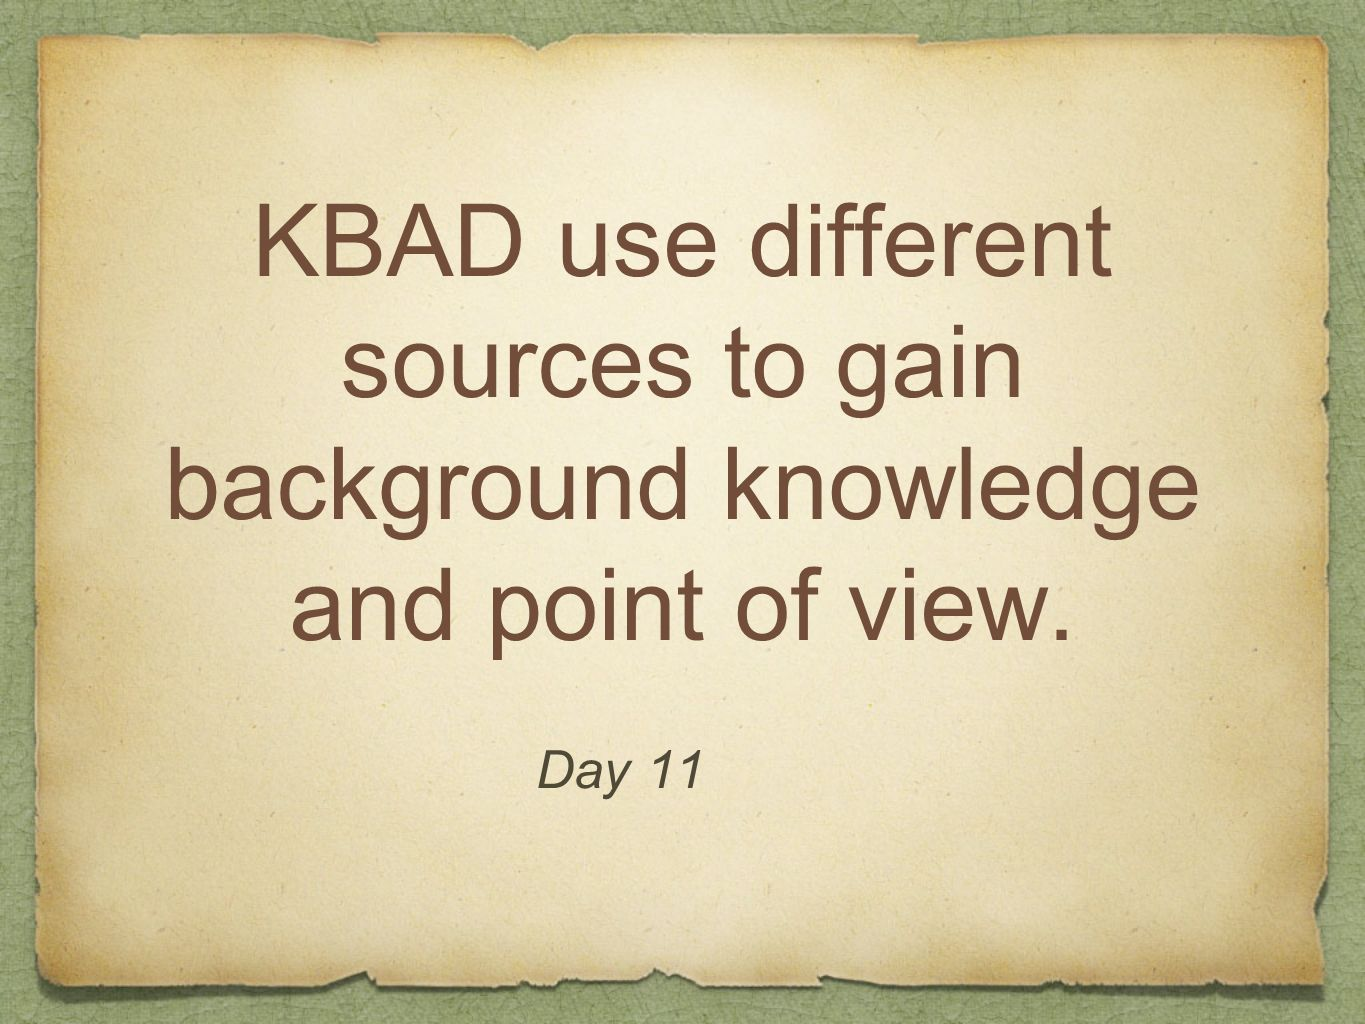 KBAD use different sources to gain background knowledge and point of view.